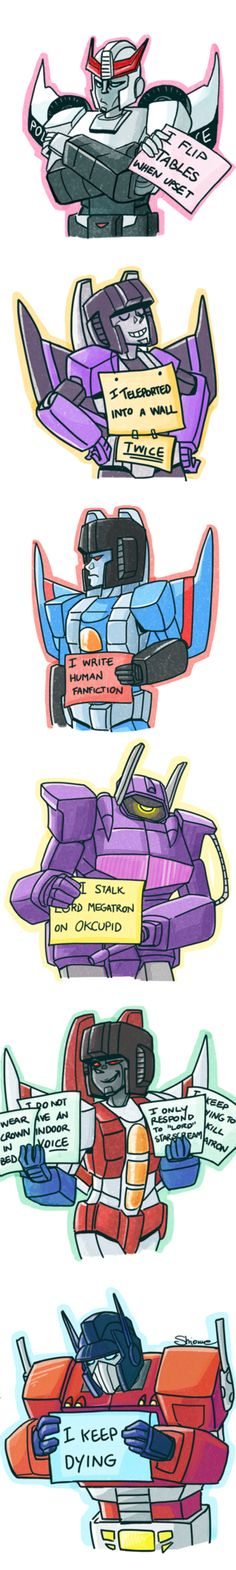 TF: robot shaming by flutterjet on deviantART>>>the last one took me by surprise. Was not expecting that at all...